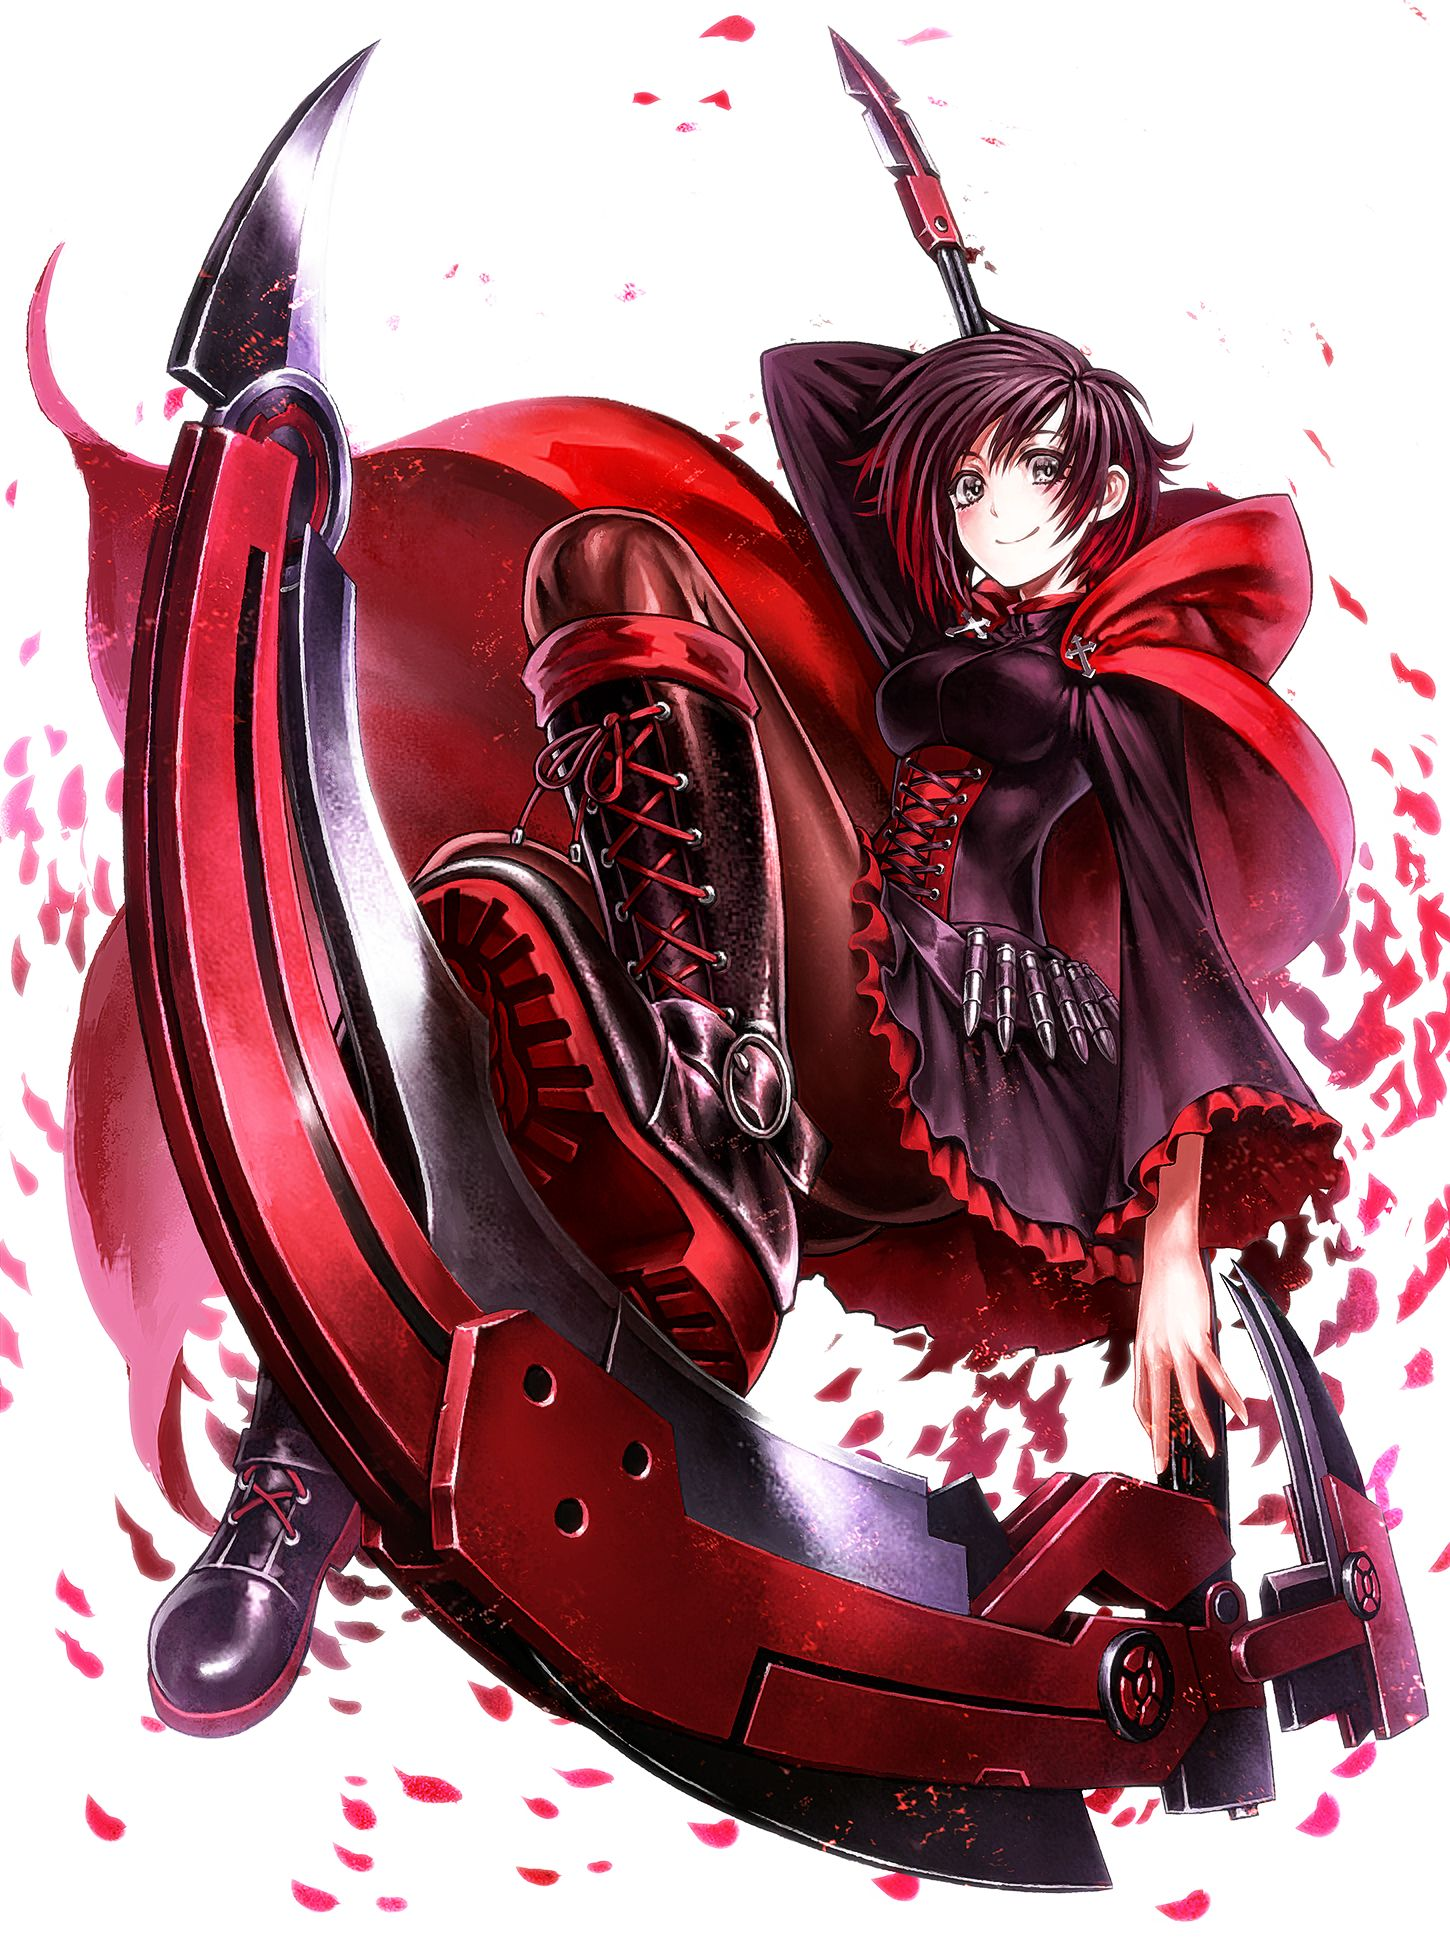 Rwby Ruby Rose By Zerochan S Website Rwby Rwby Ruby Rose Rwby